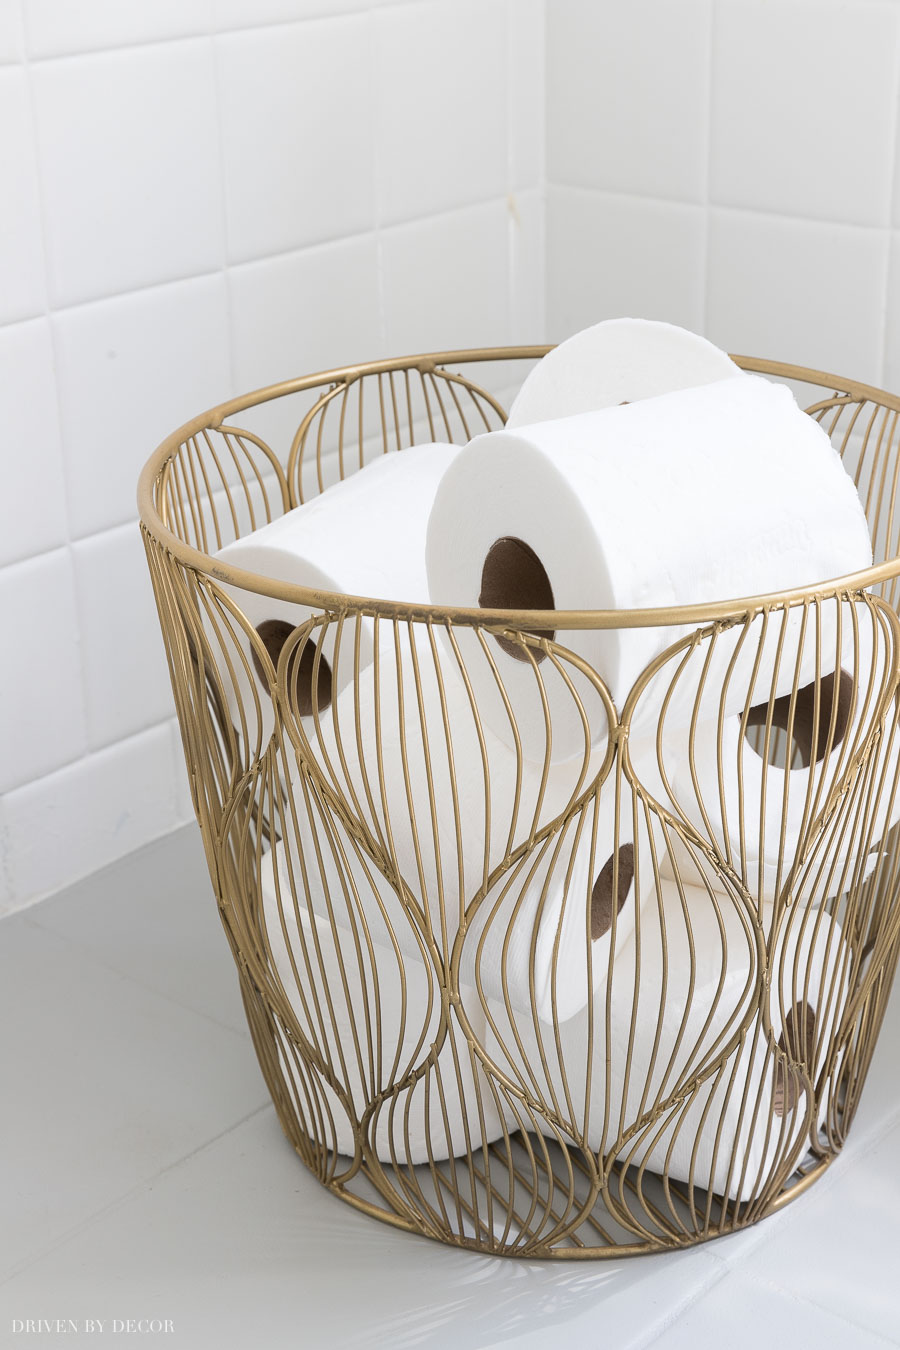 This small gold wire basket is perfect for holding extra rolls of toilet paper in the bathroom!